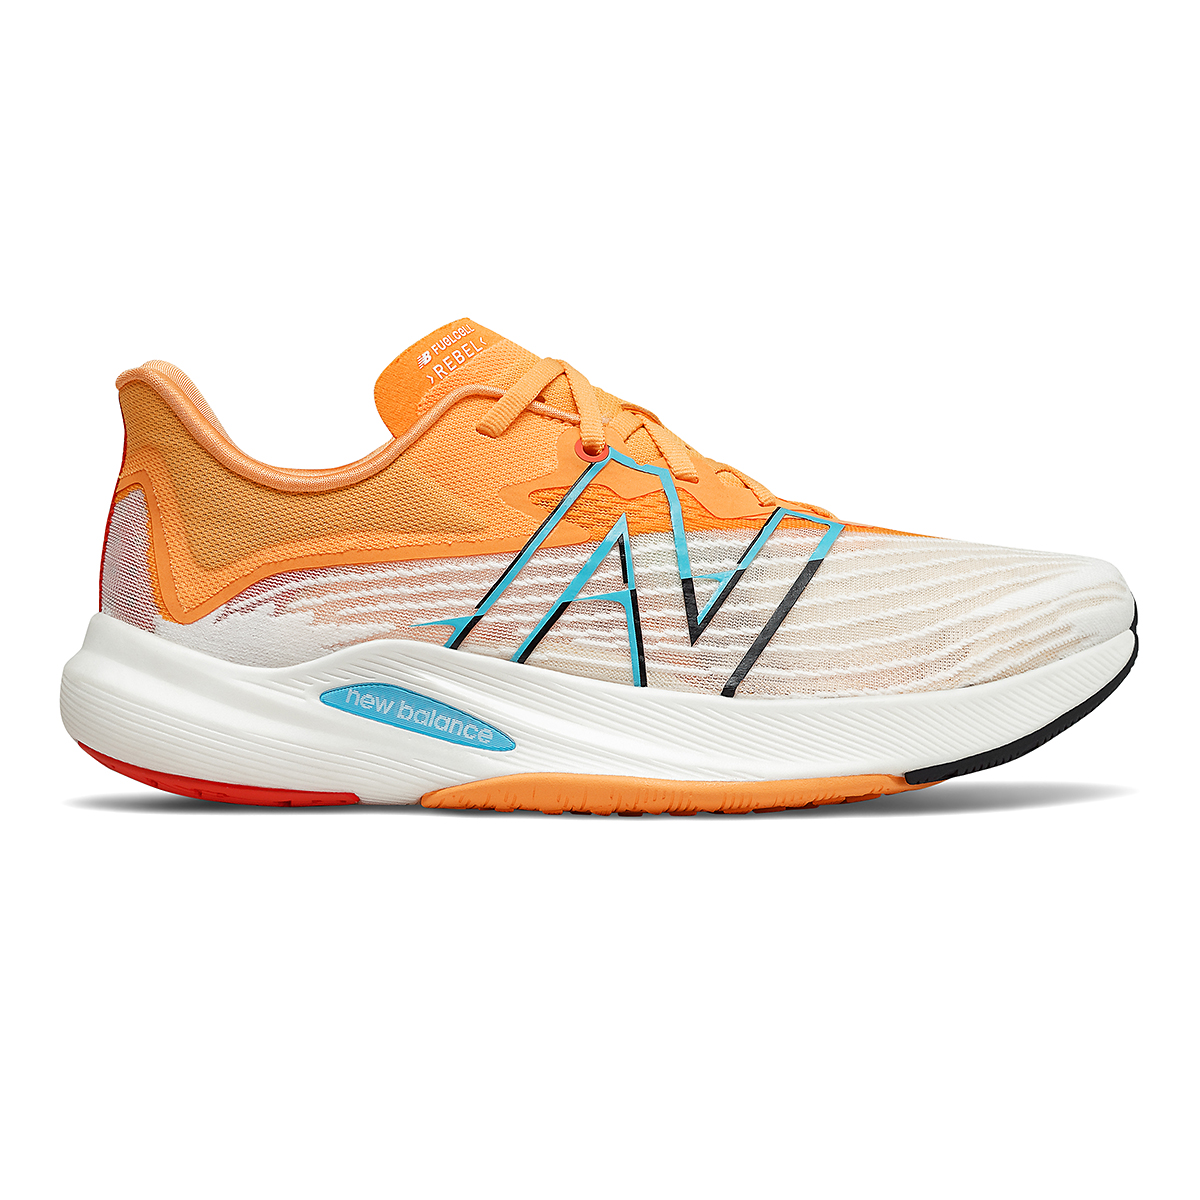 Men's New Balance Fuelcell Rebel V2 Running Shoe - Color: White/Habanero/Virtual Sky - Size: 11 - Width: Regular, White/Habanero/Virtual Sky, large, image 1